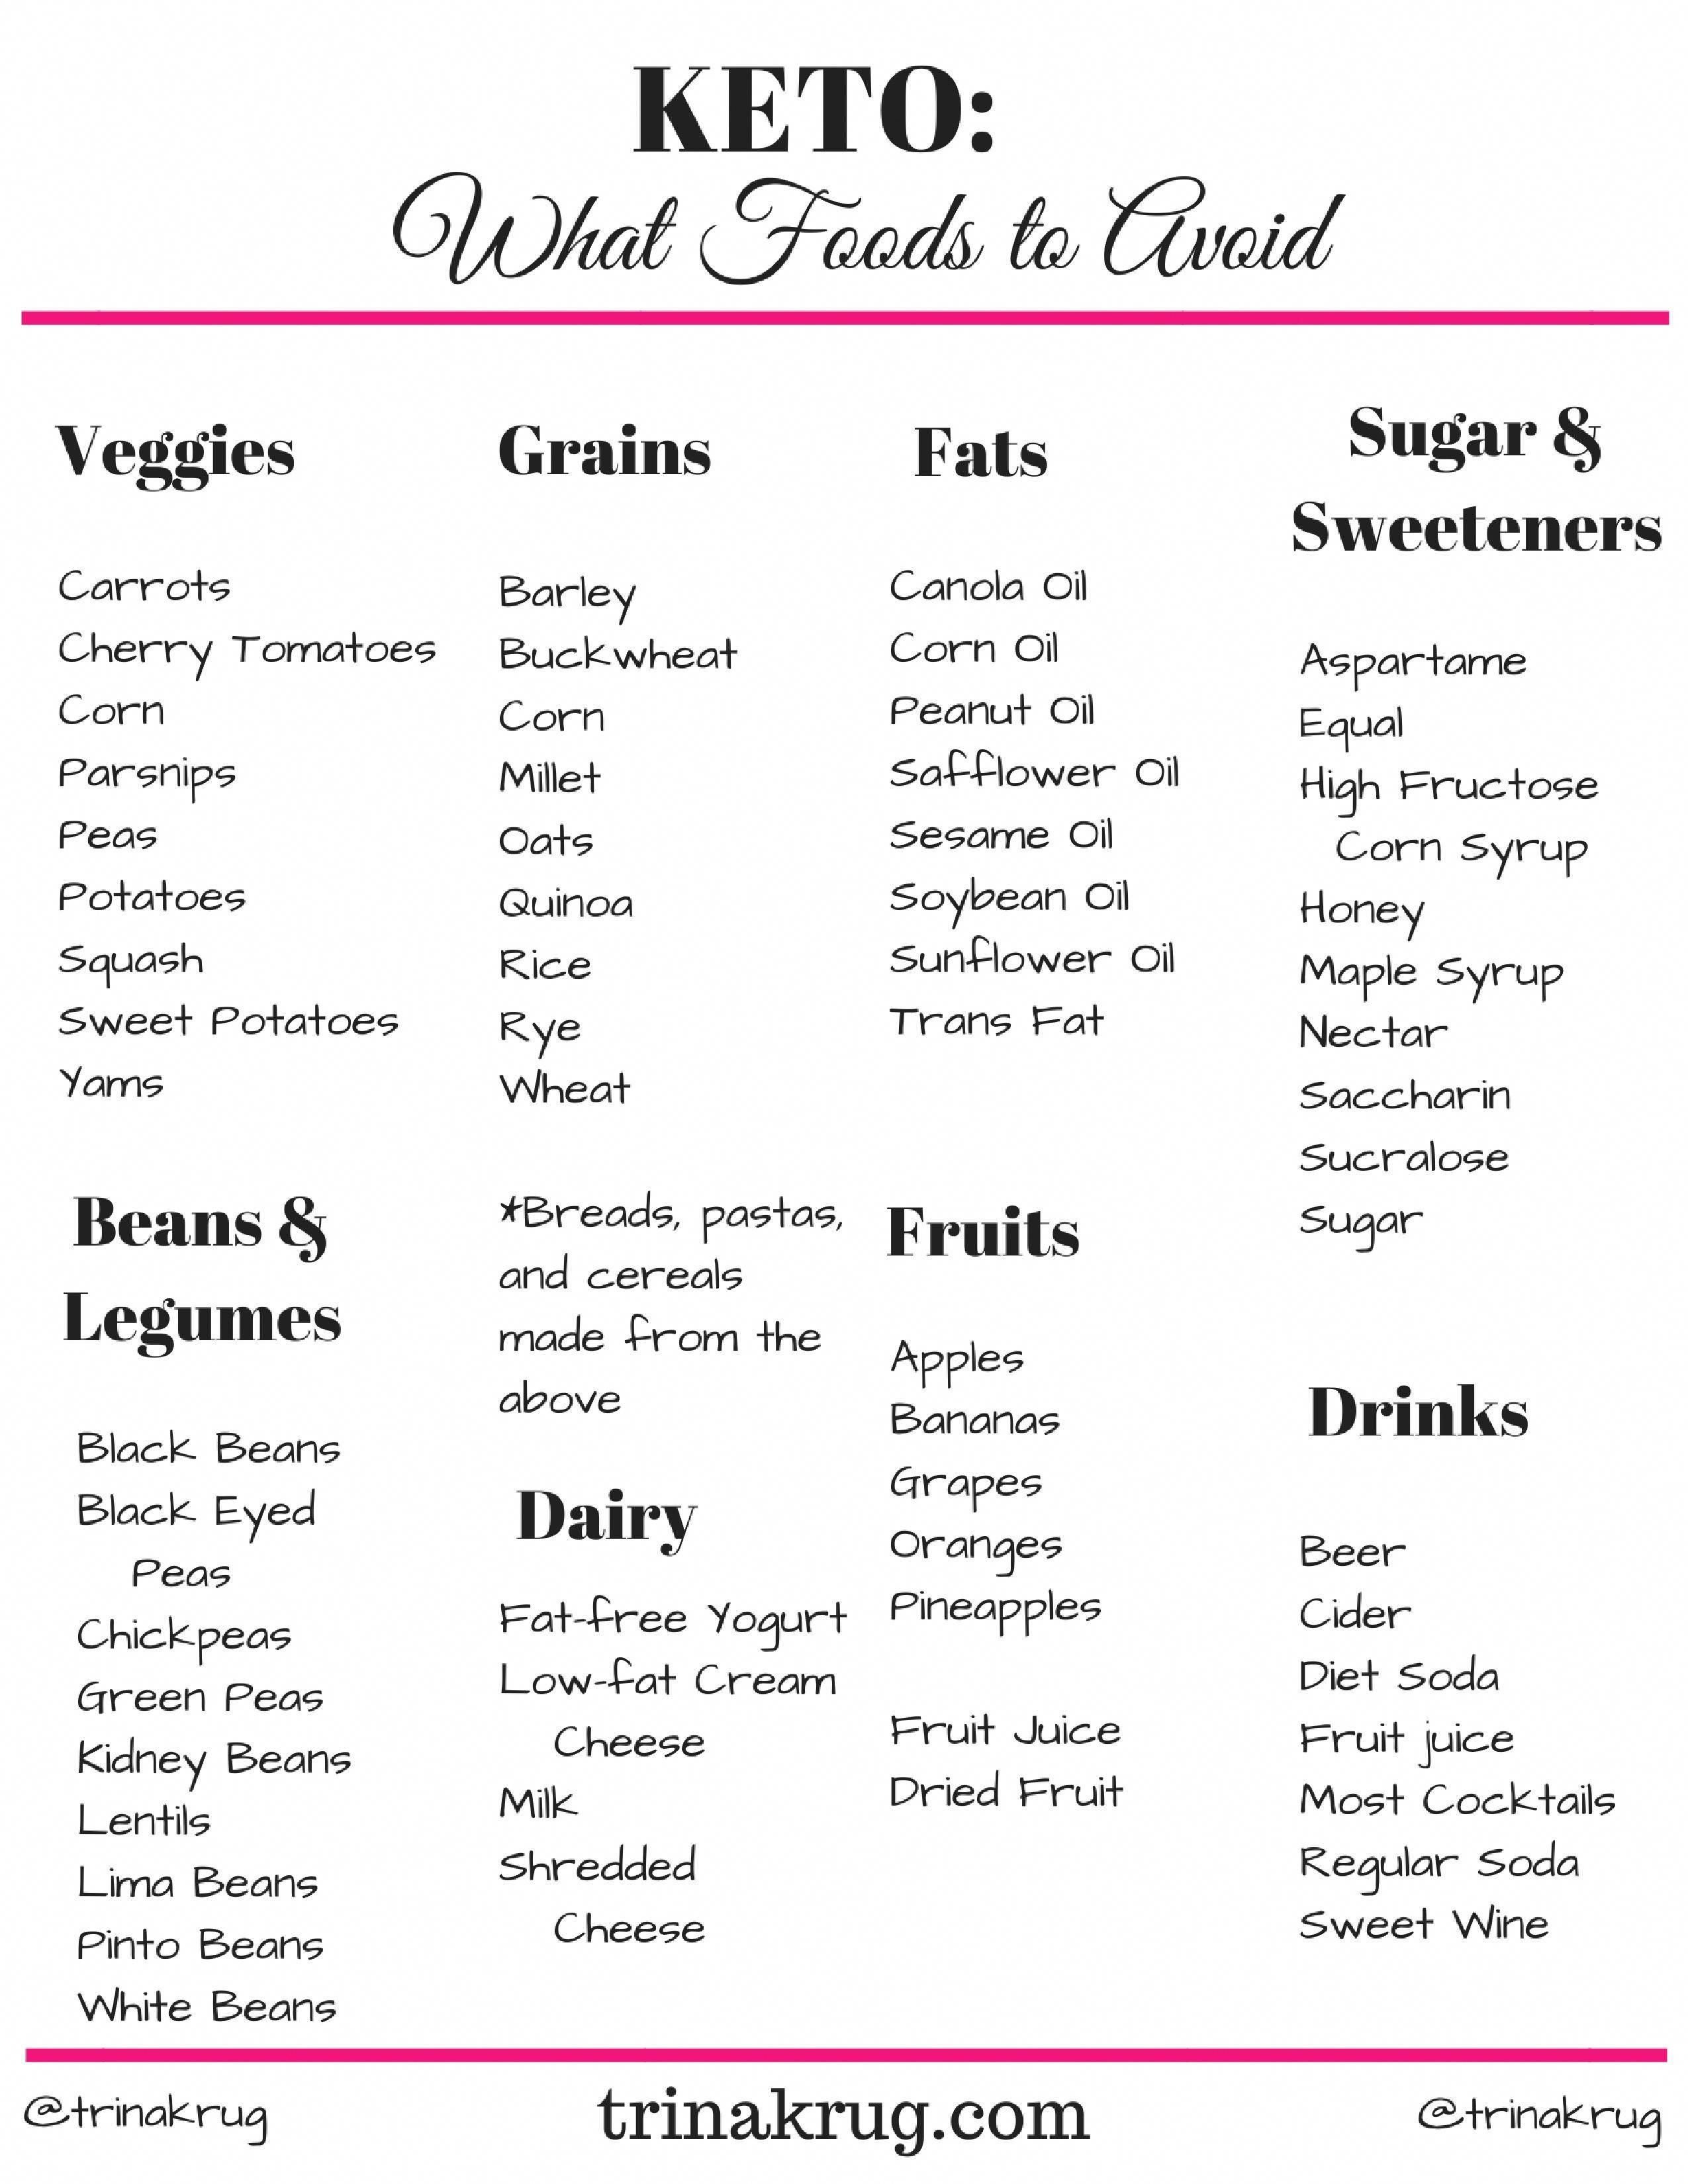 Keto for beginners how to get started foods to avoid